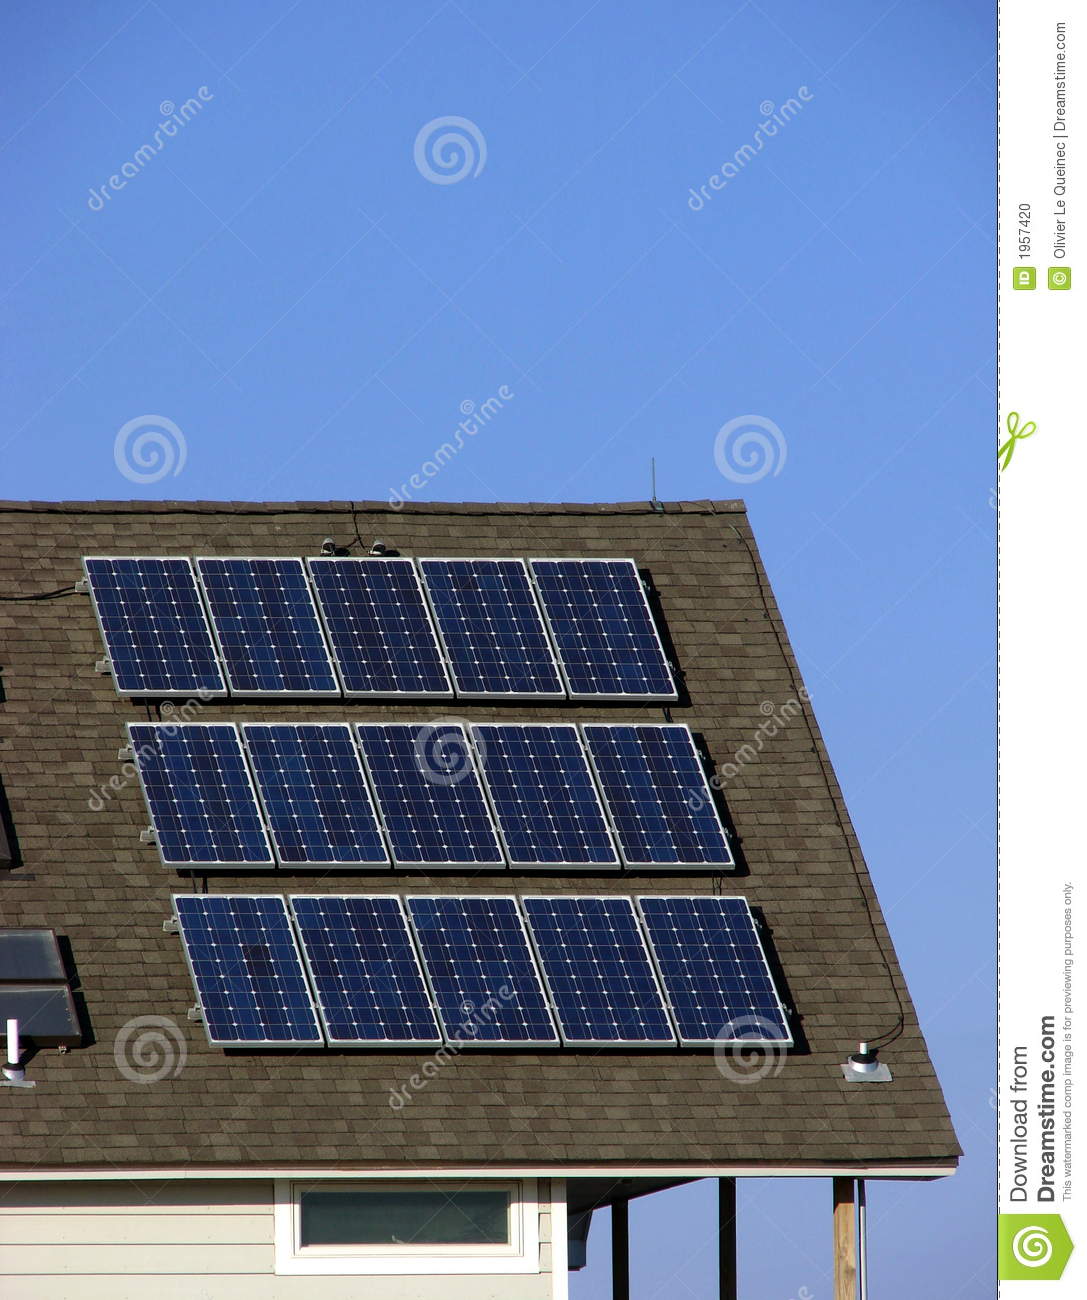 how to make my own solar panel system